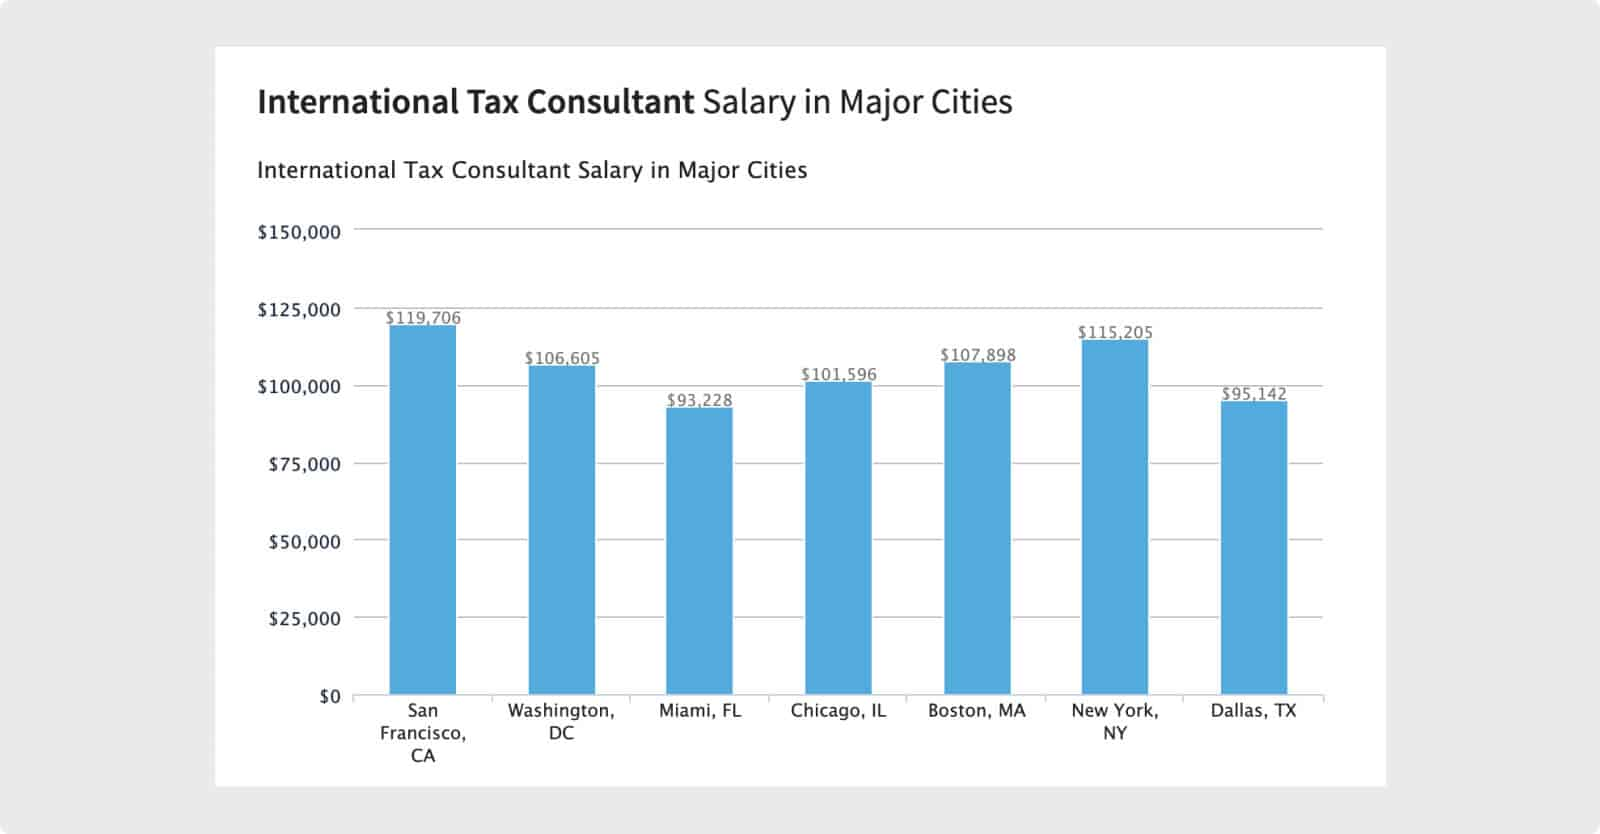 International tax consultants earn over six figures annually.